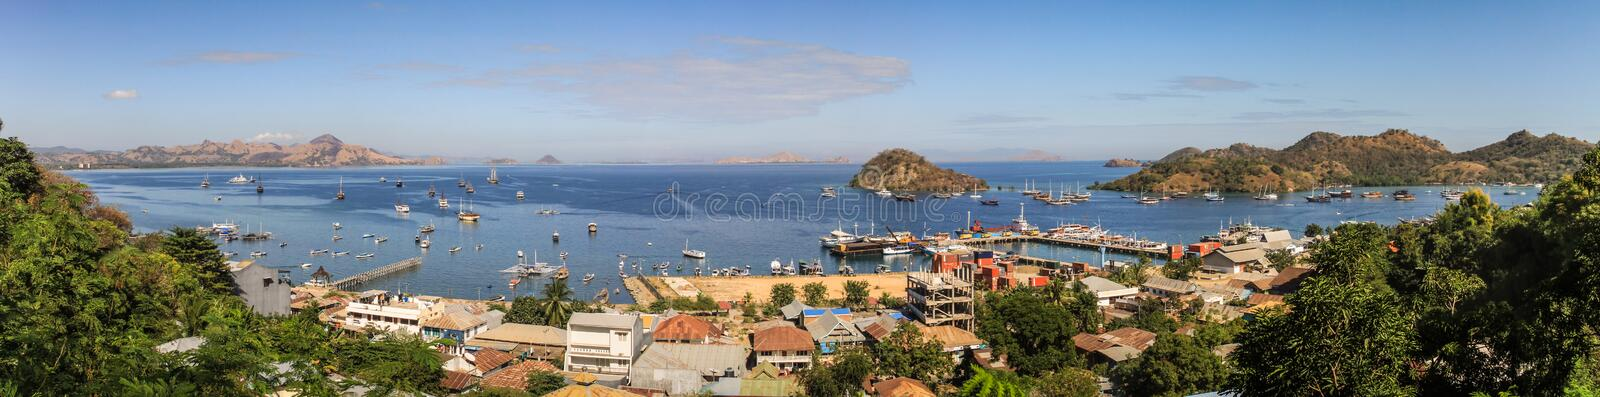 Panorama on Labuan Bajo Bay on a glorious day, Nusa Tenggara, flores island, Indonesia. Labuan Bajo is a fishing town located at the western end of Flores in the stock image